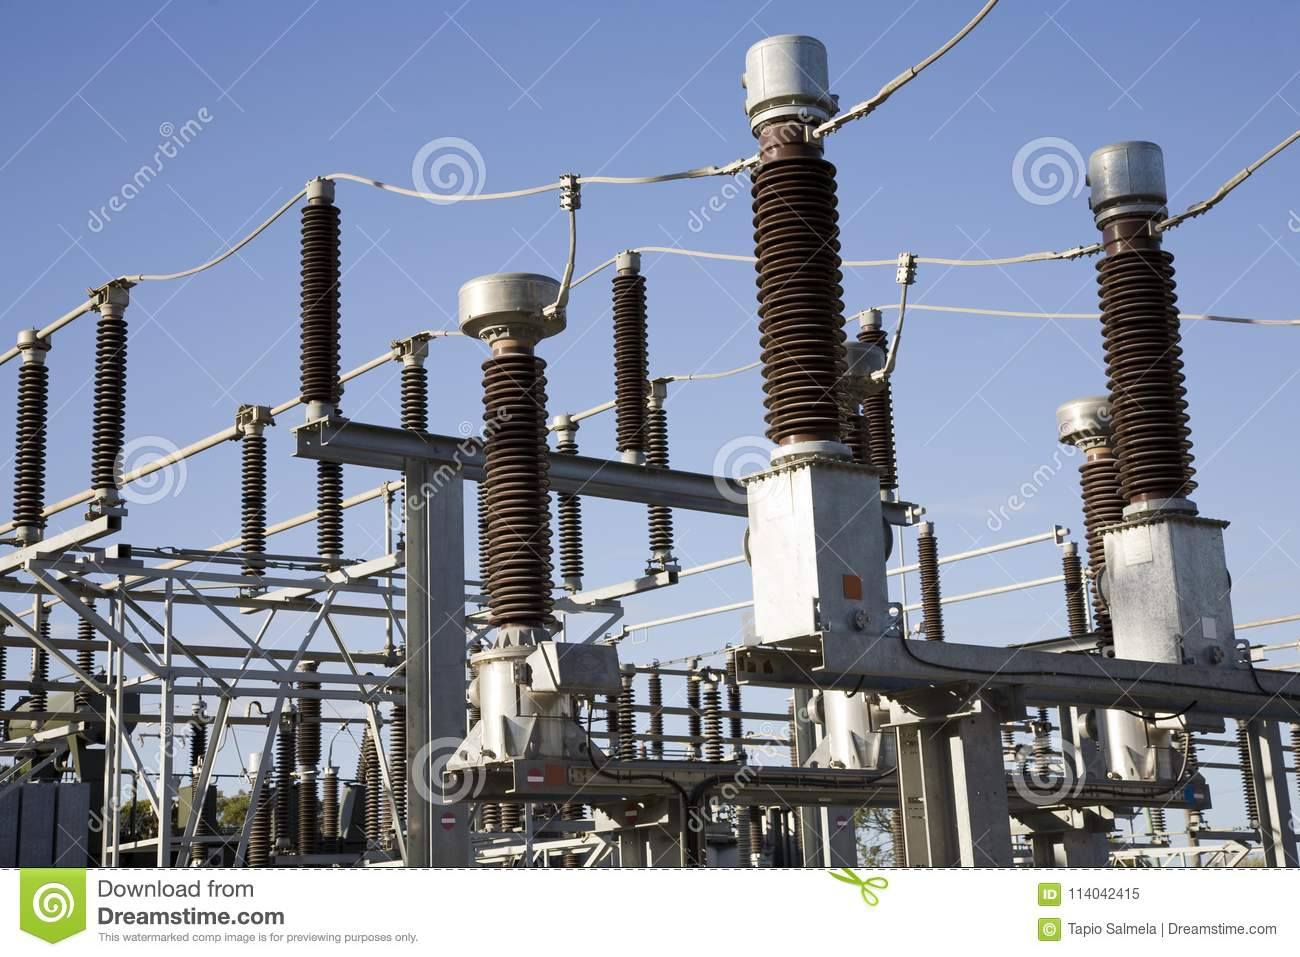 High Voltage Switch Yard Equipment Stock Image - Image of